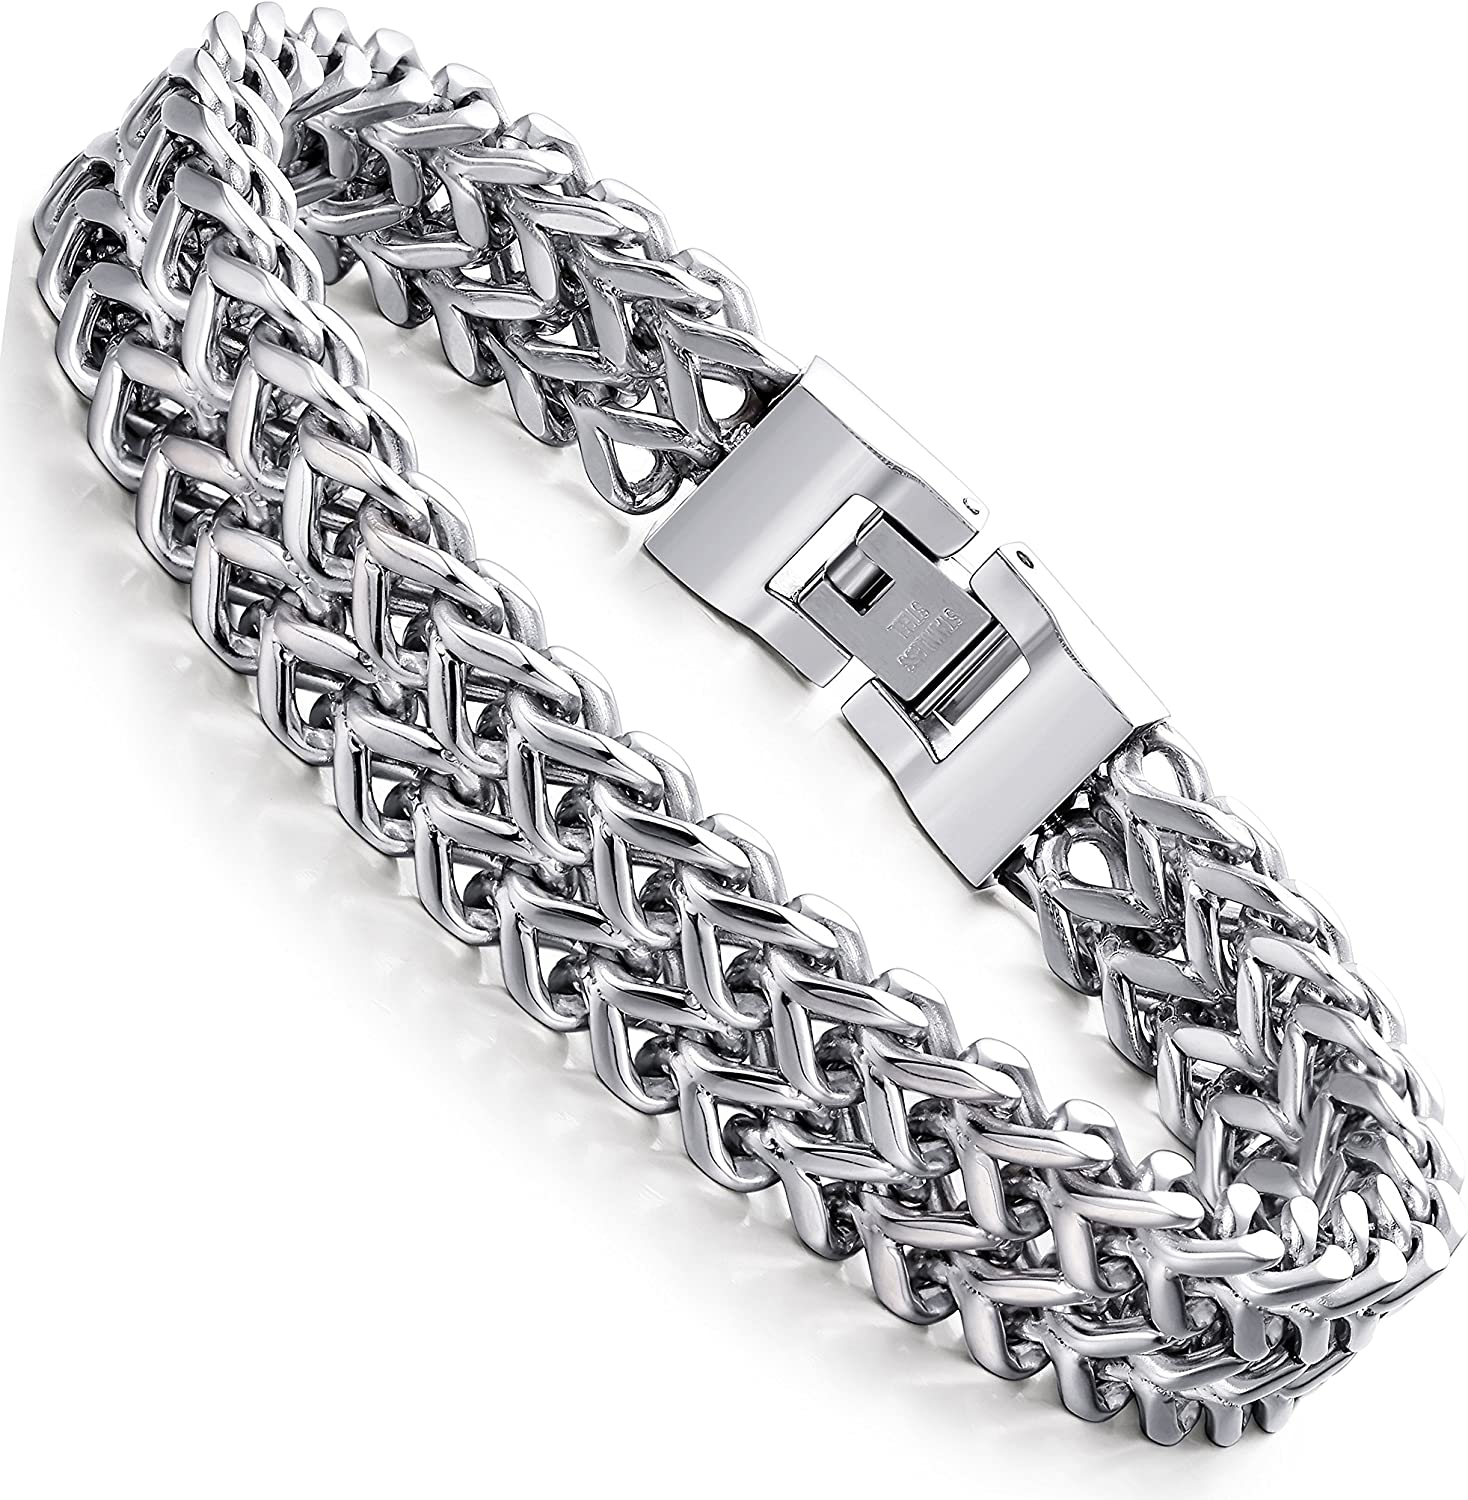 FIBO wholesale STEEL Limited price sale Stainless Steel 12MM Chain Bracelet Two-Strand Wheat